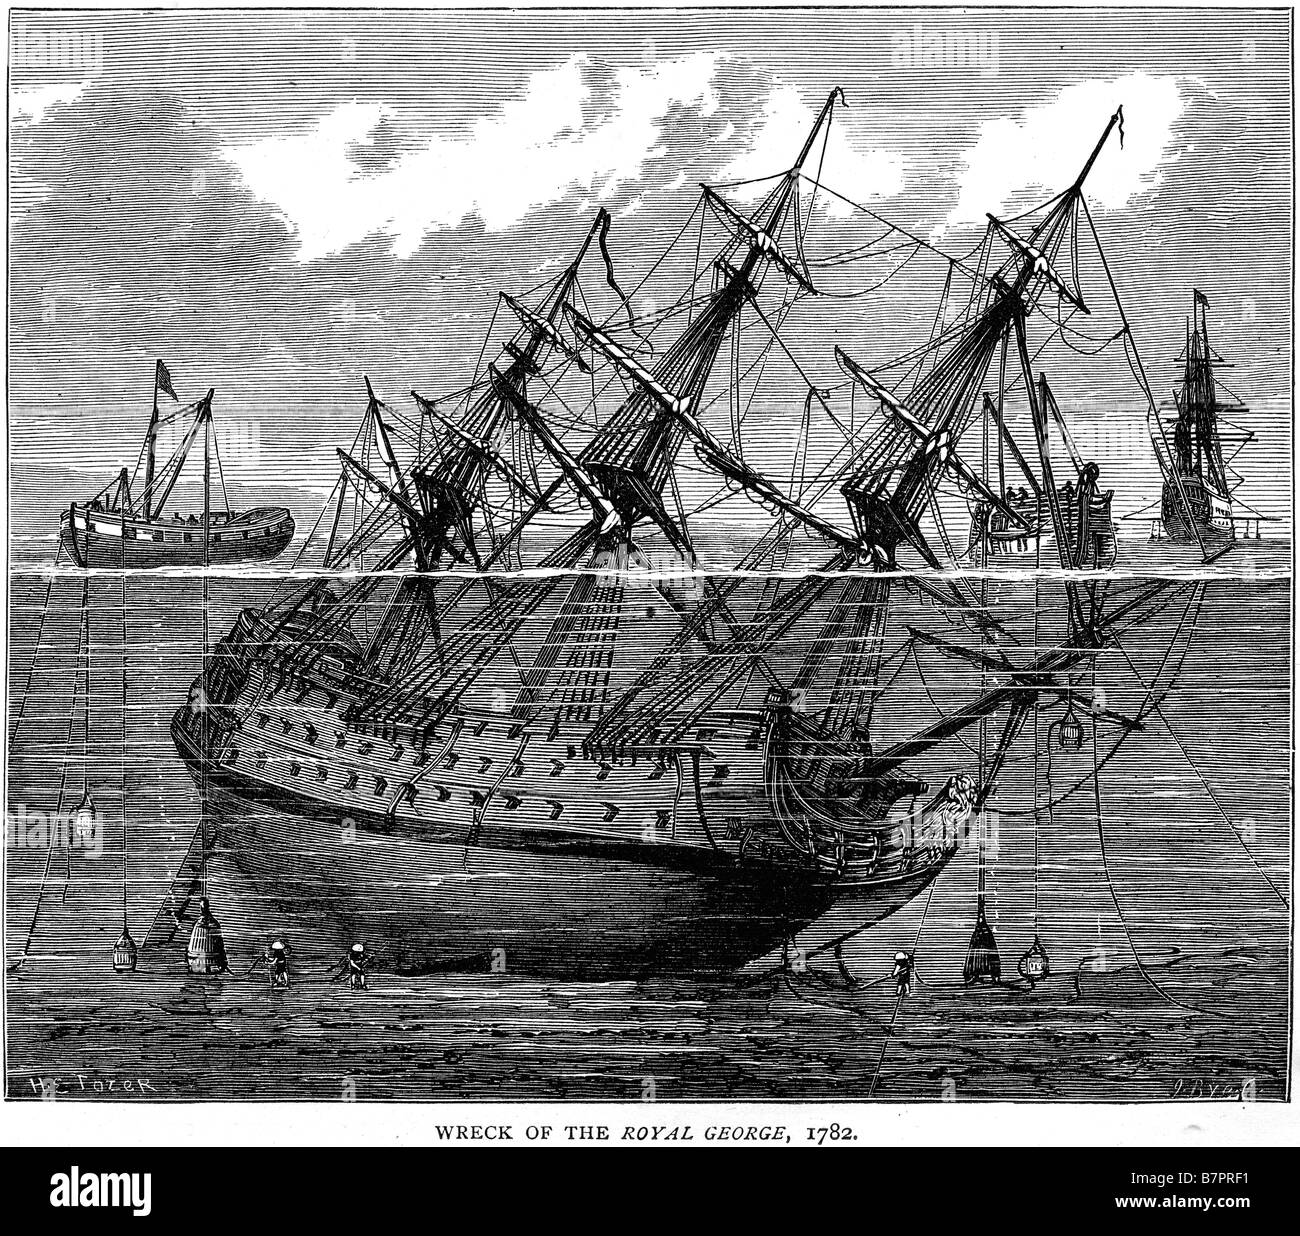 Wreak Royal George 1782 Ship war sunk divers salvage Battle ship Fleet sea  Water Sailing Sail Wreak marine navy maritime naval H